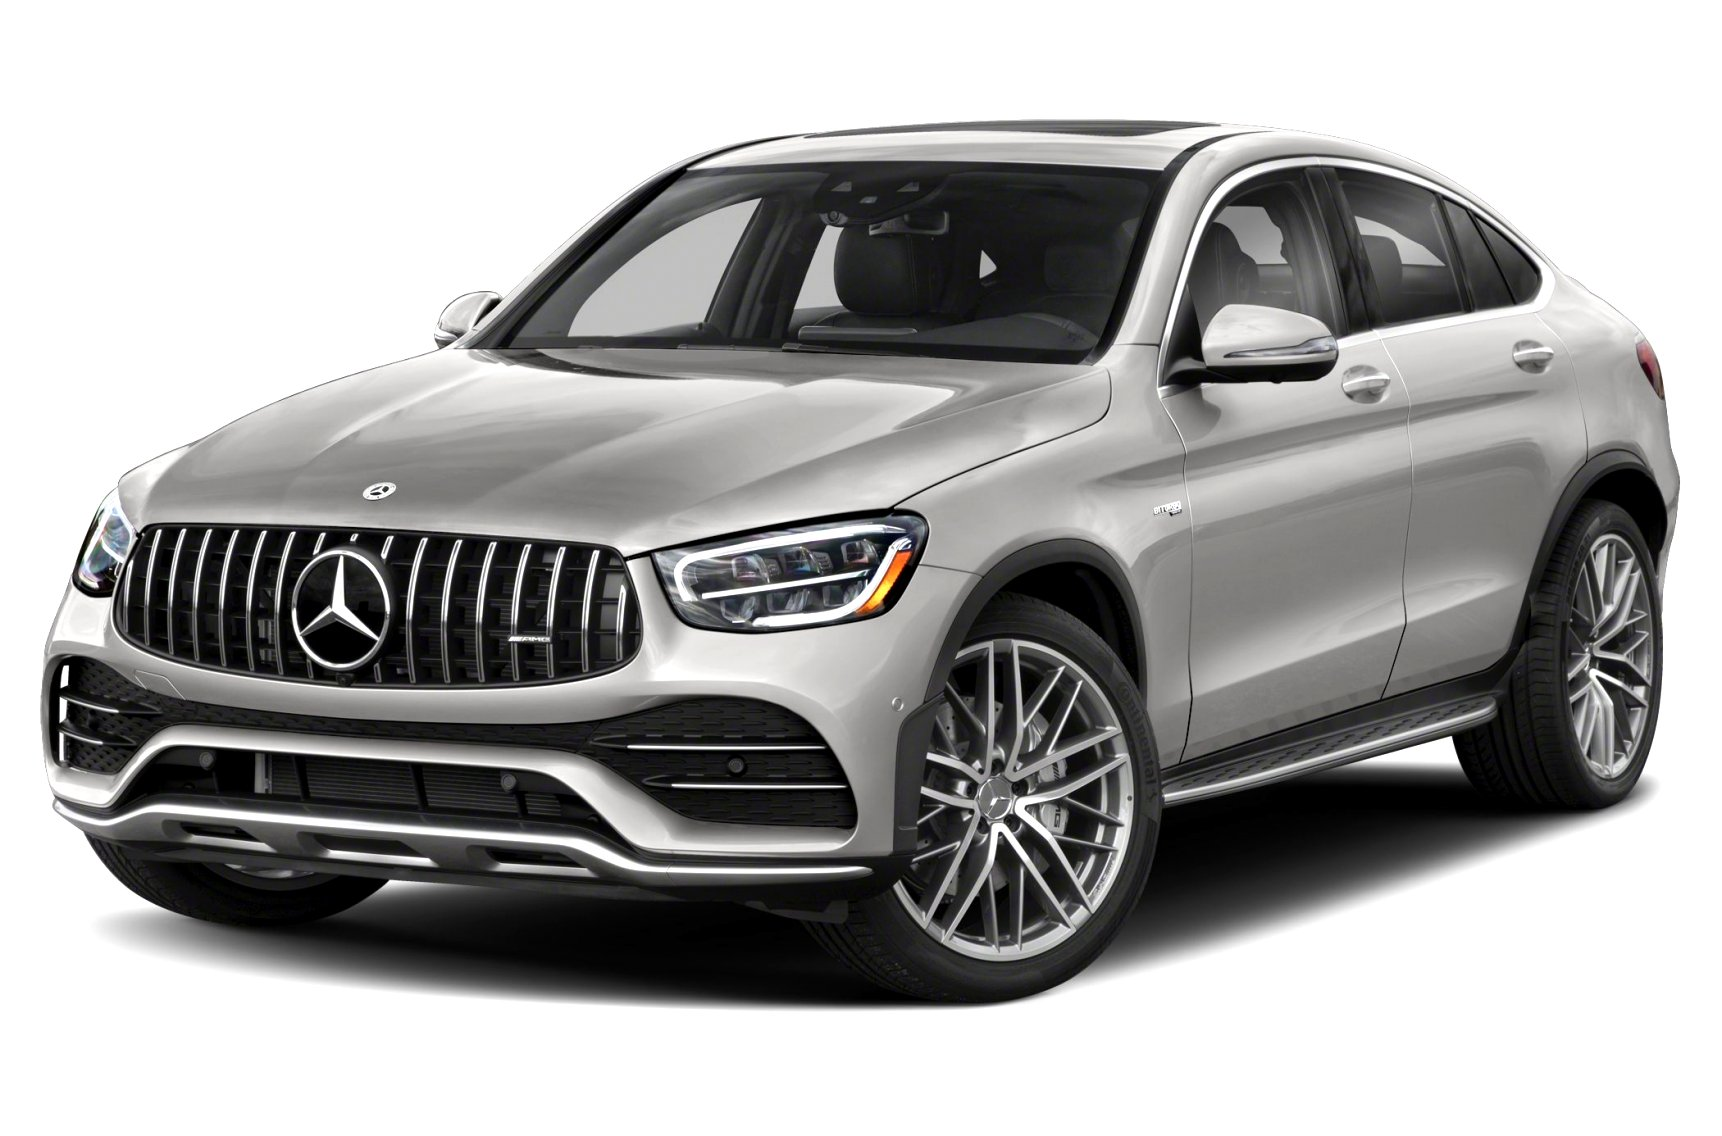 2020 mercedes houston Specs and Review